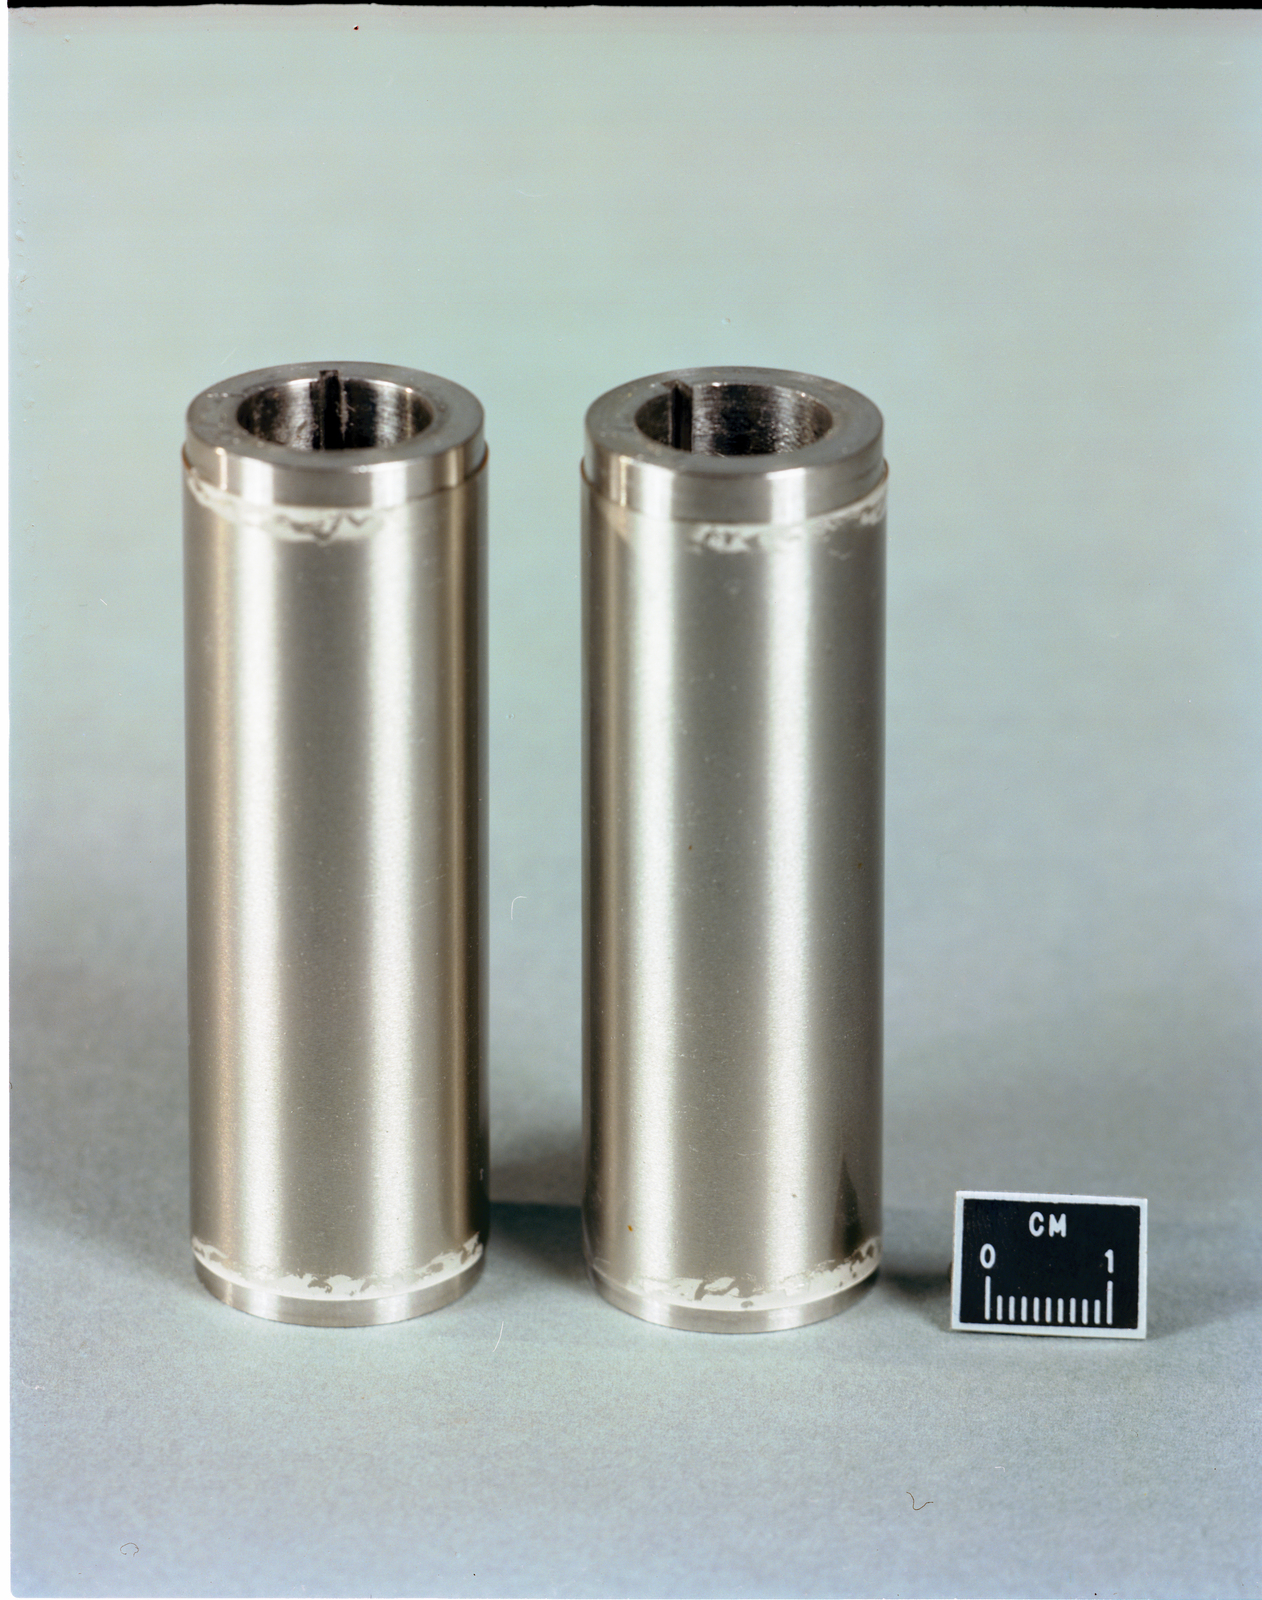 ICEPHOBIC COATINGS ON STAINLESS STEEL CYLINDERS